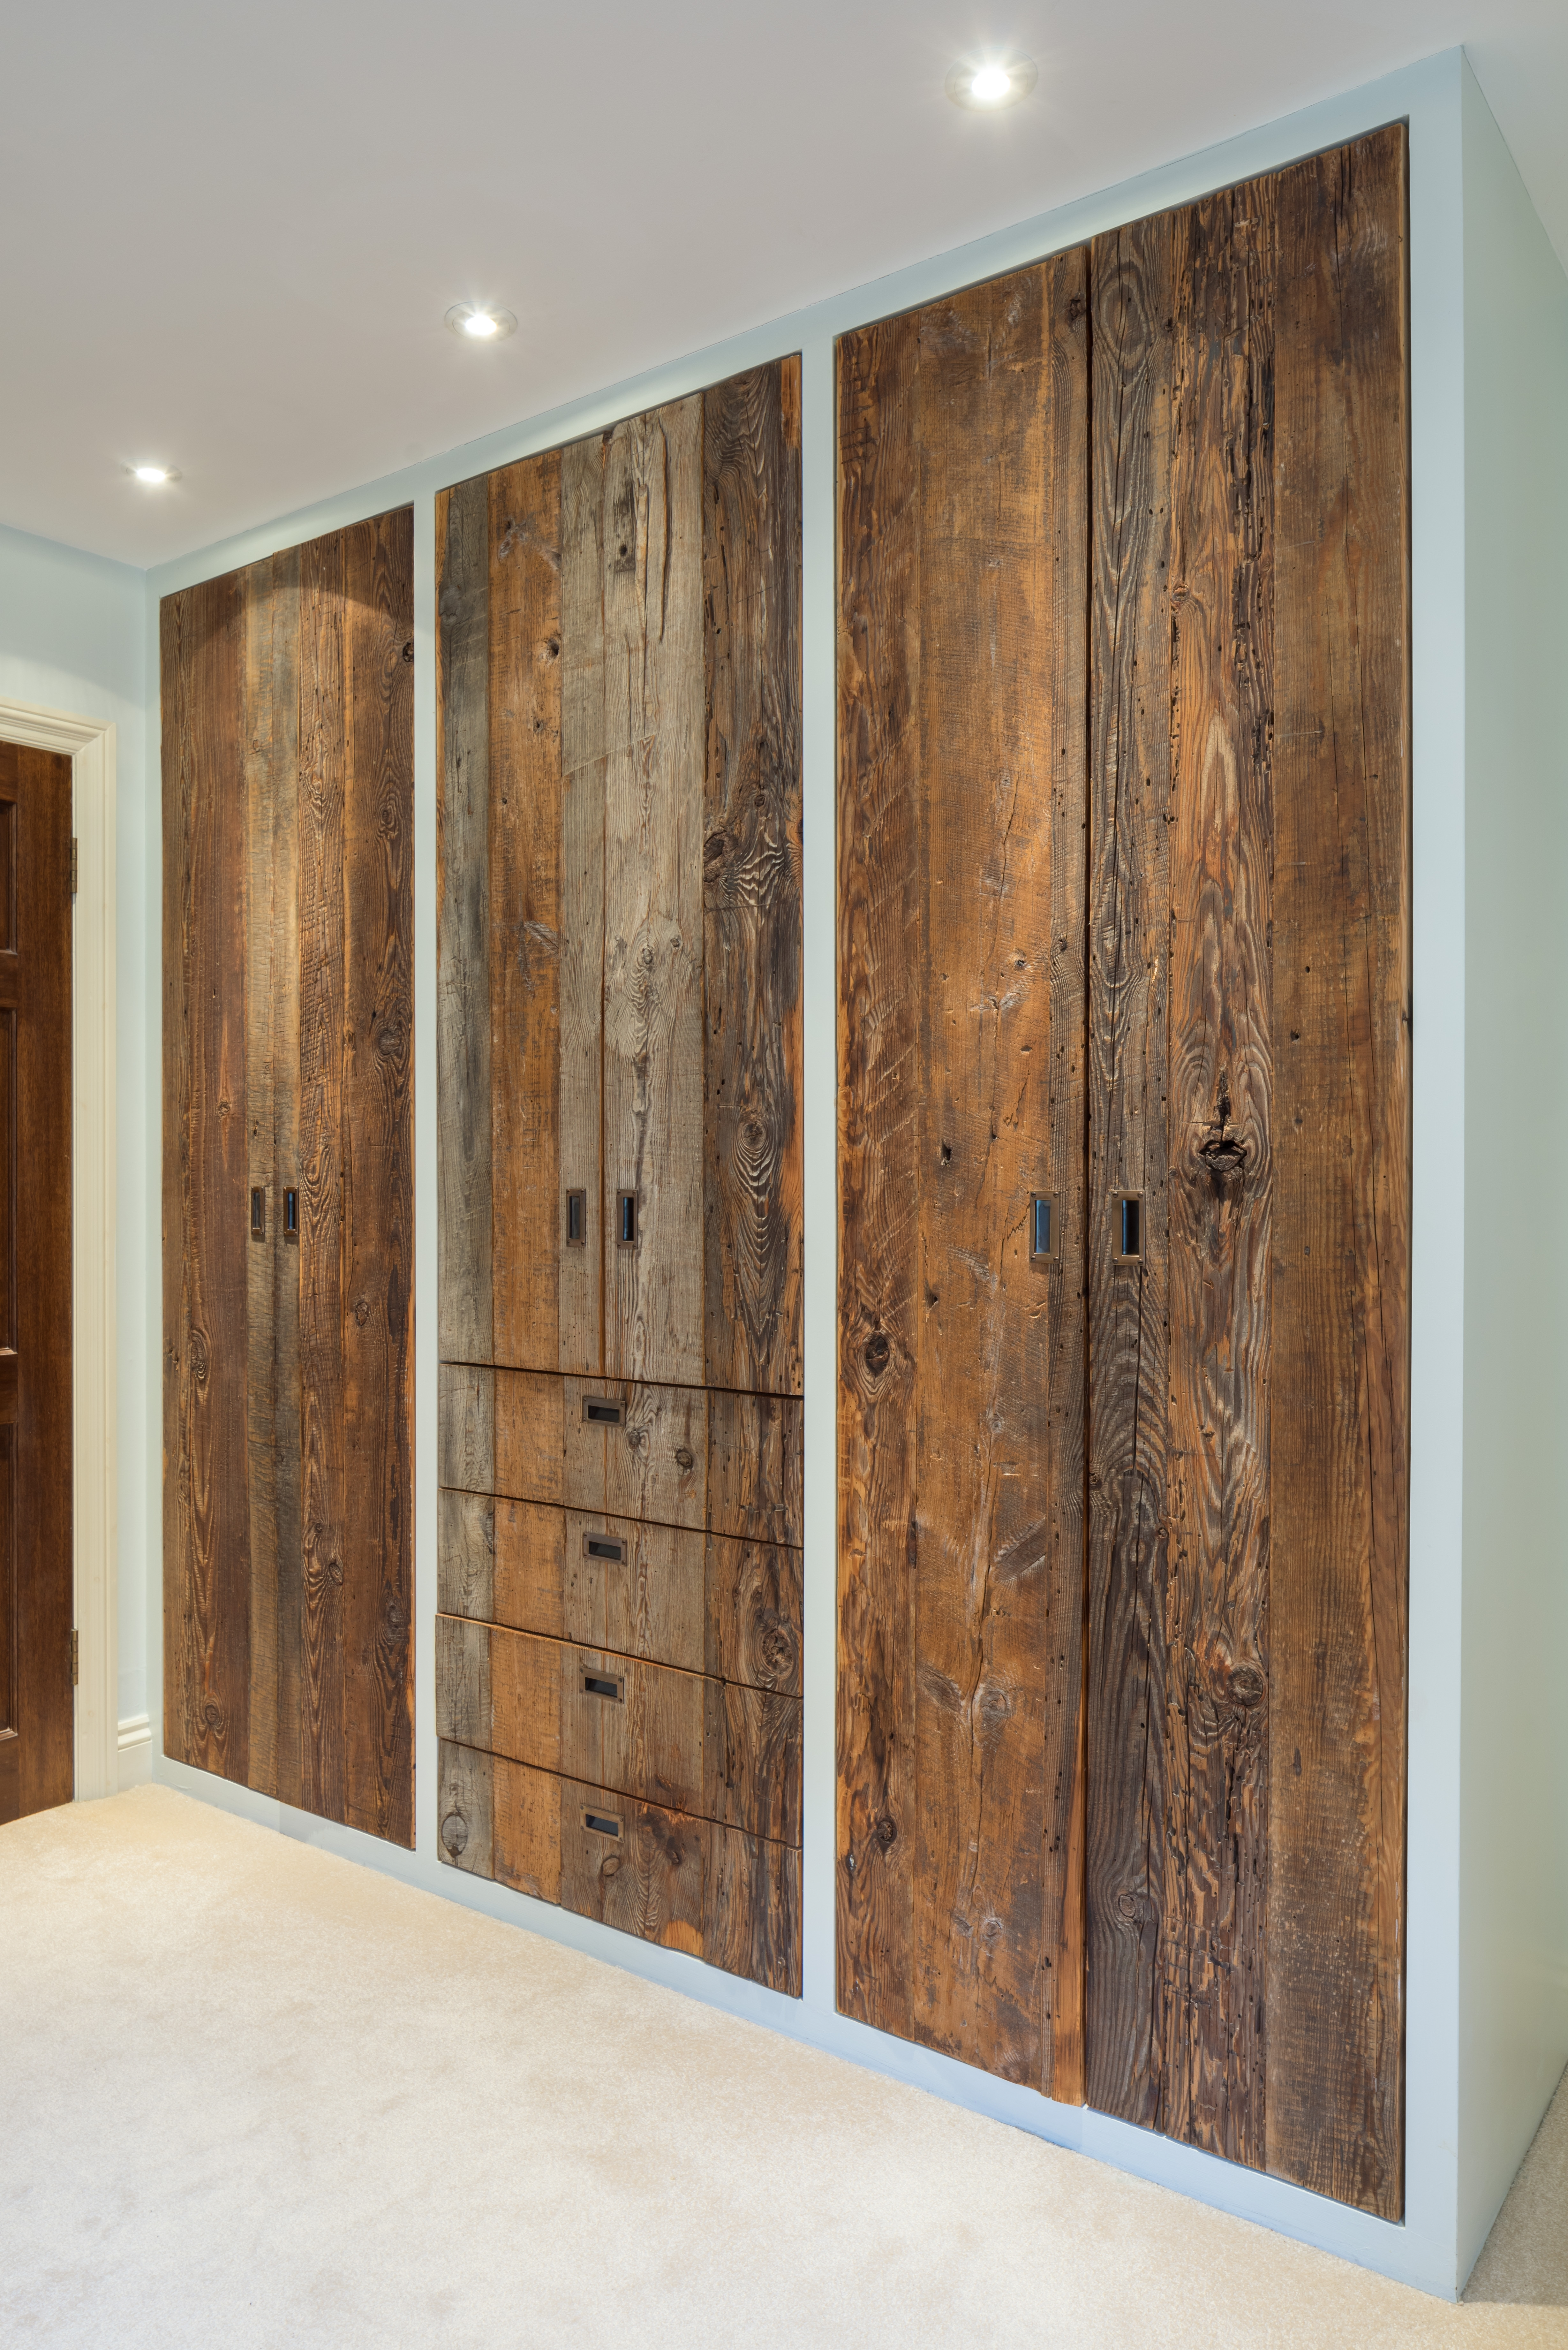 Reclaimed Wood Wardrobes – Brandler London Archives With Regard To Current Wood Wardrobes (View 9 of 15)